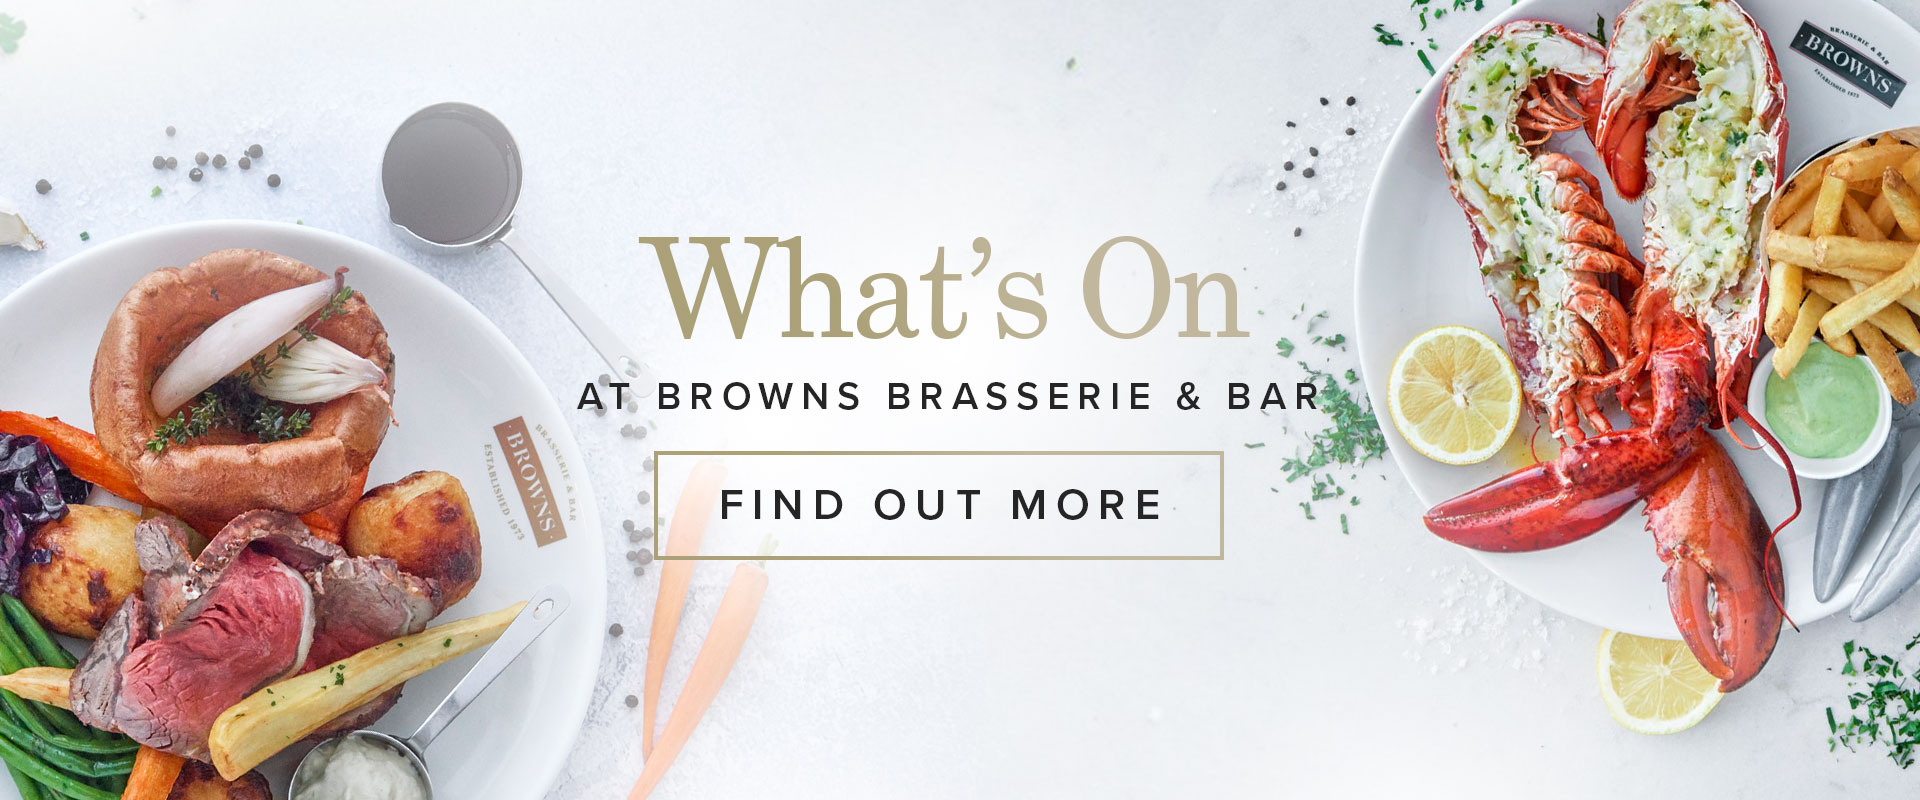 What's On at Browns Old Jewry